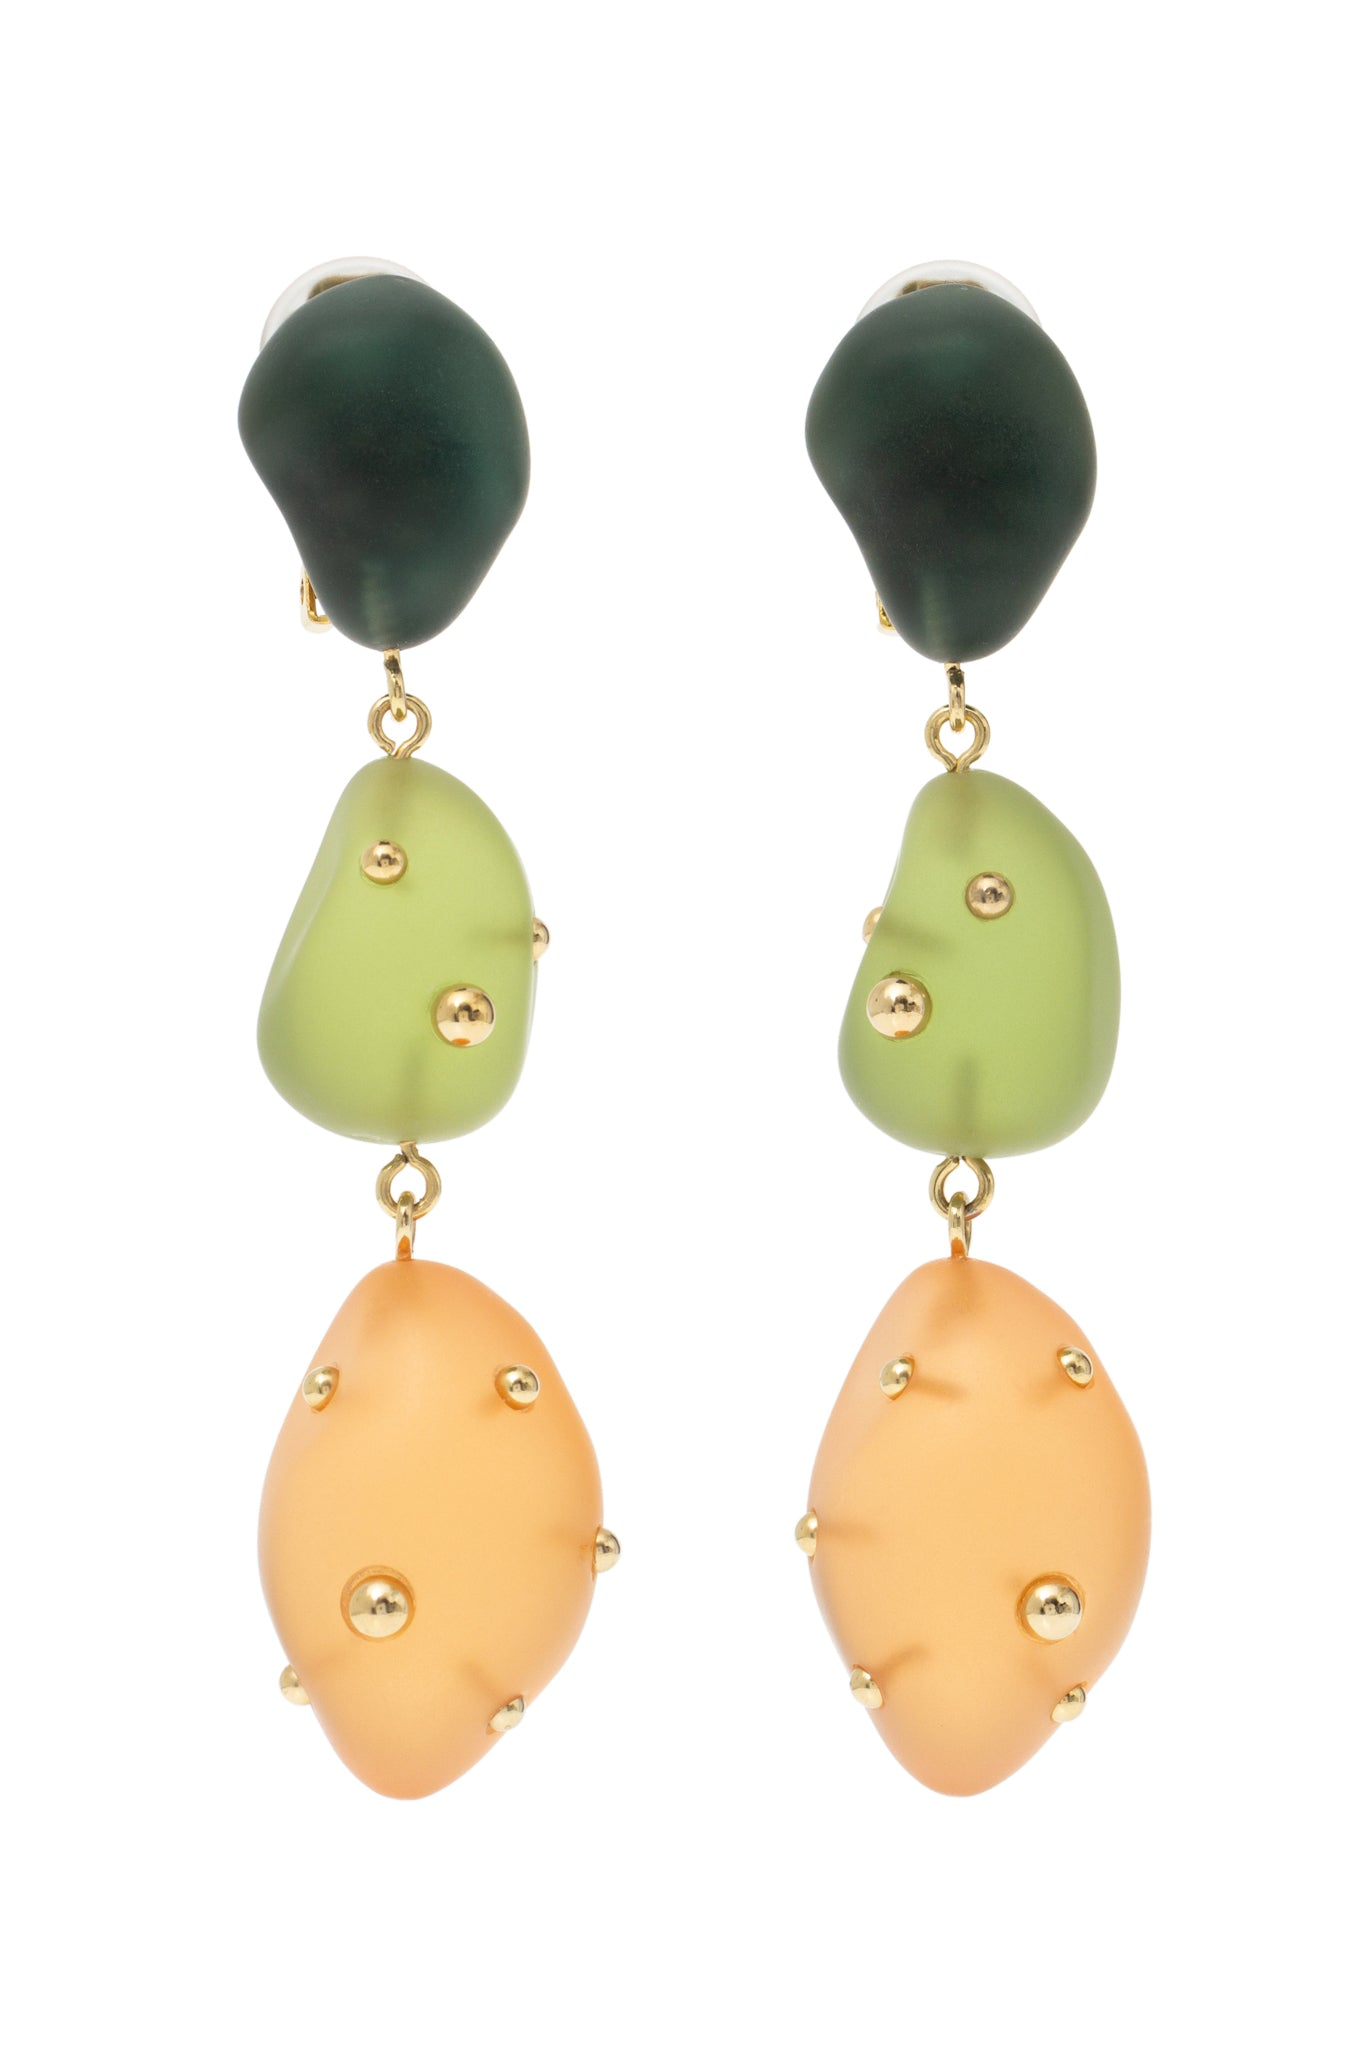 GREEN/ORANGE ARTSY EARRINGS